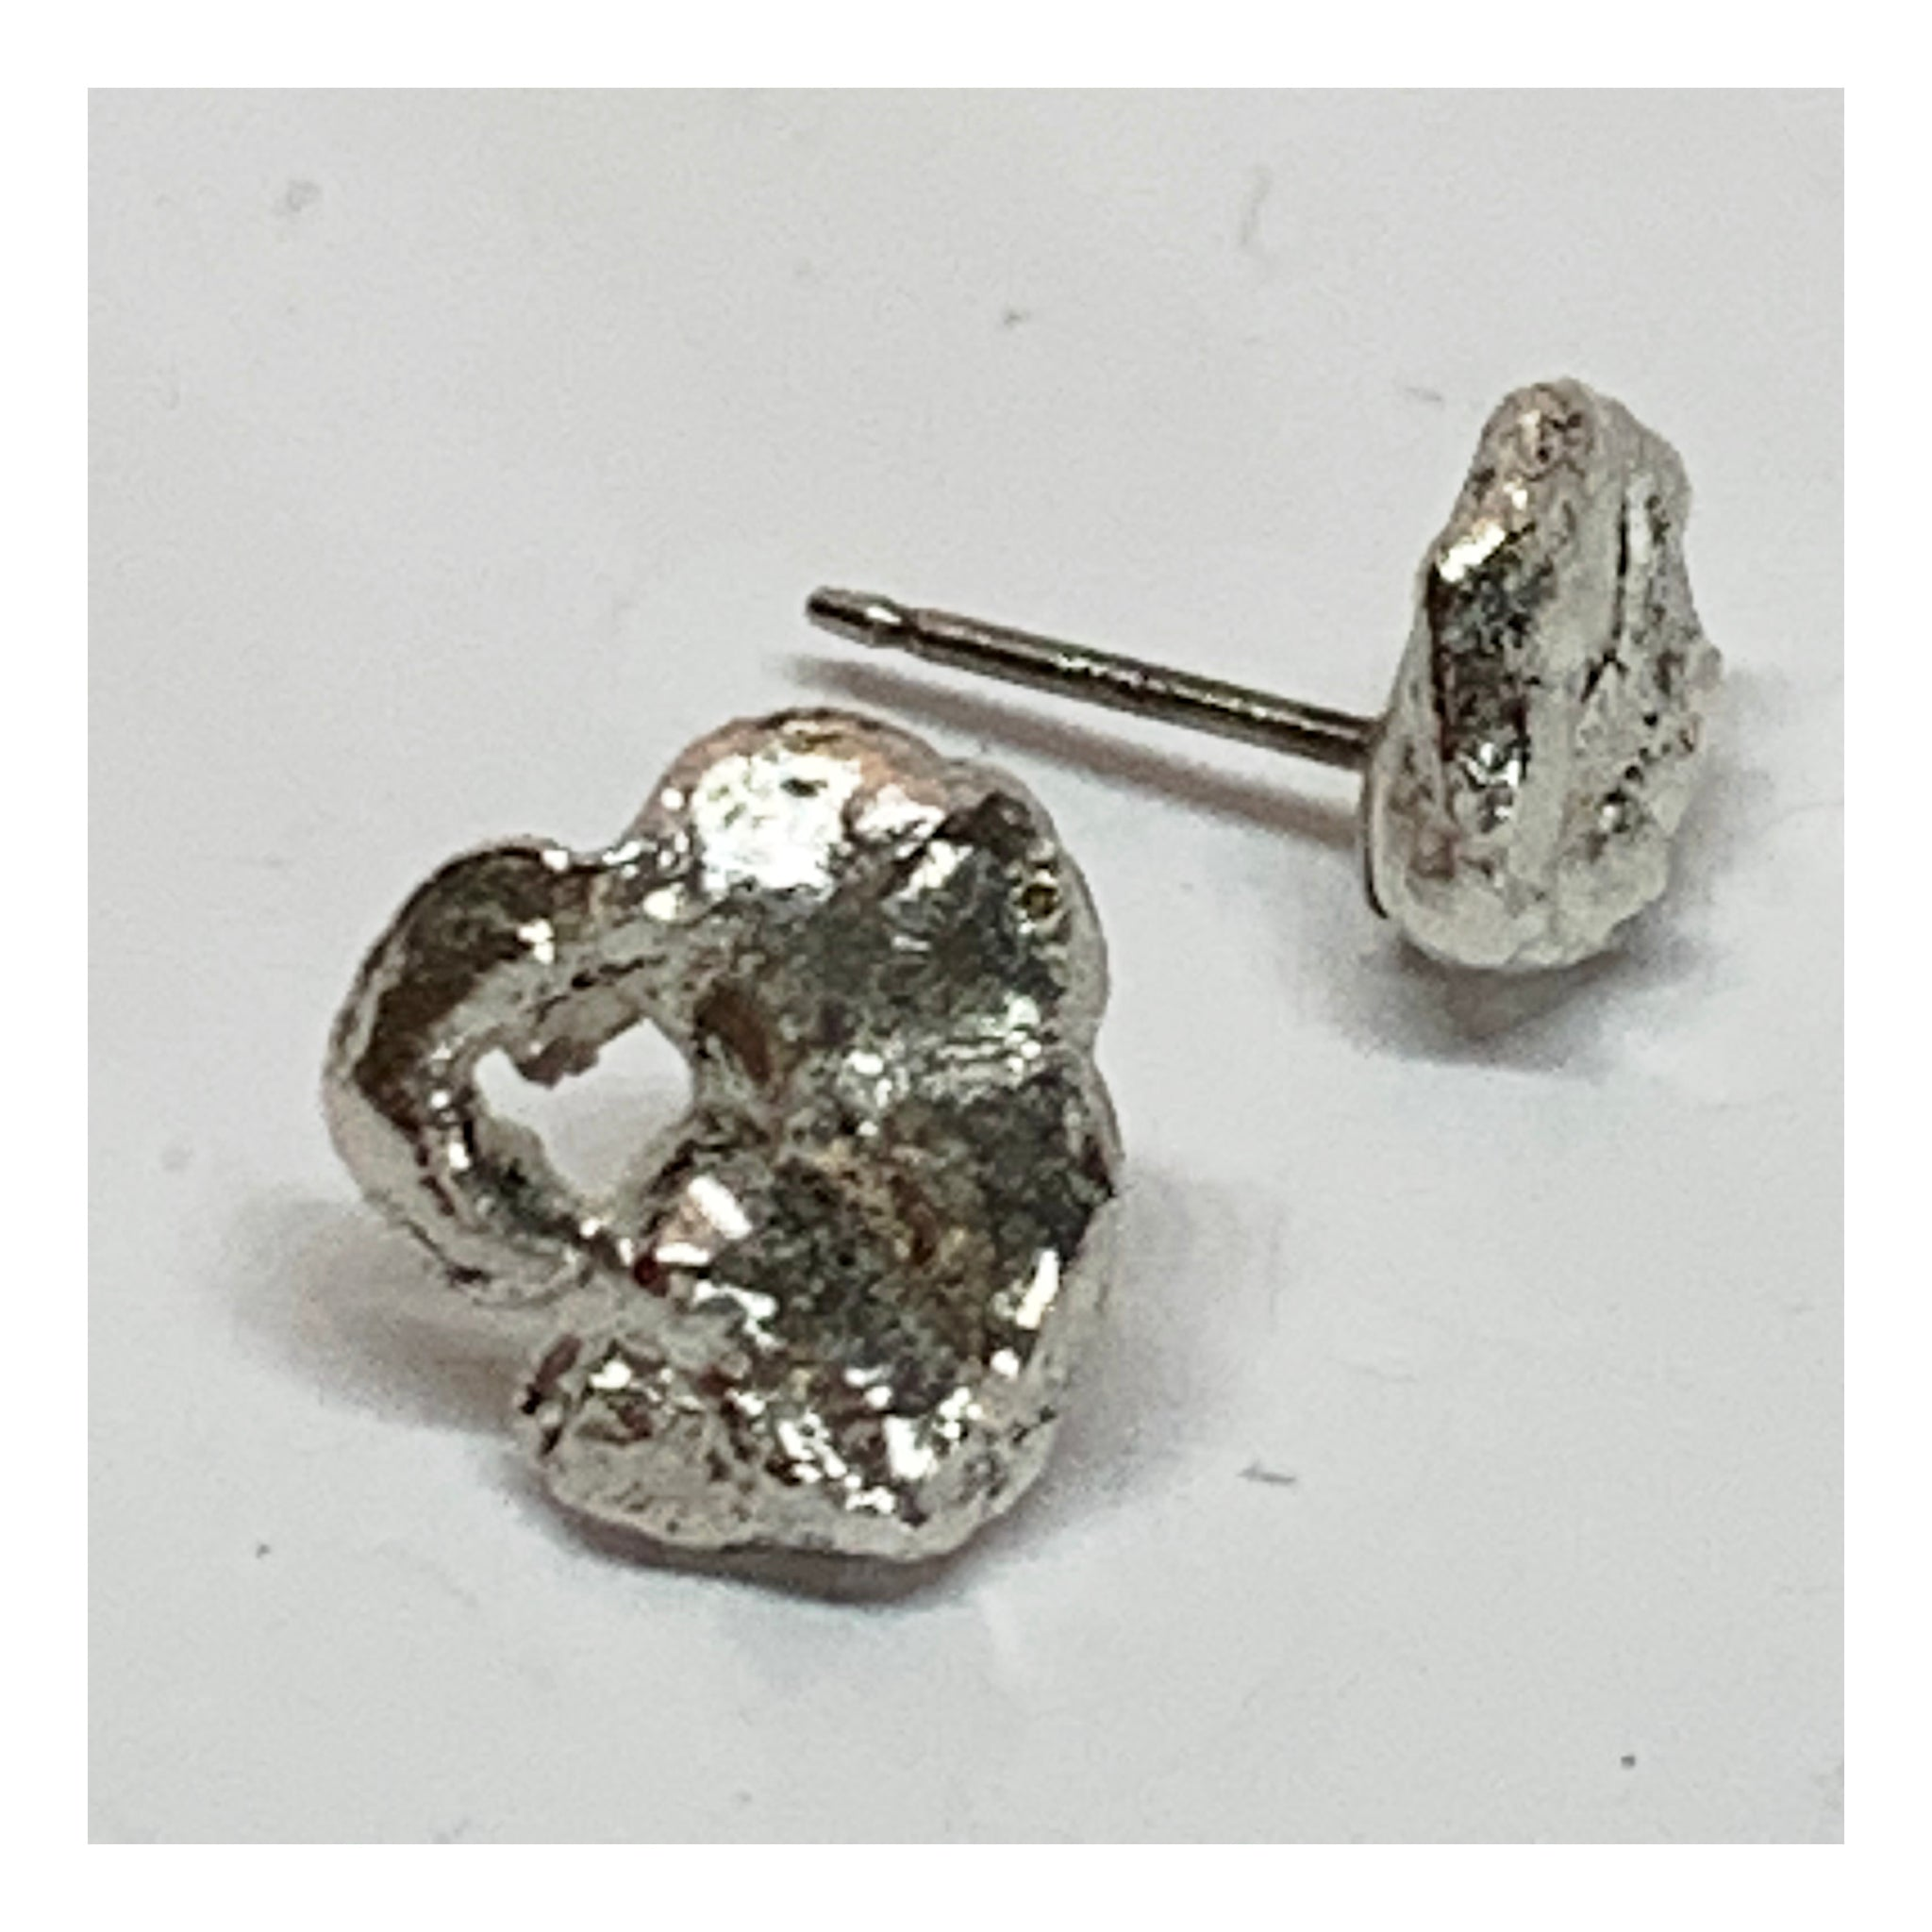 Asymmetrical Sterling Silver Nugget Earrings - One of a Kind Jewelry - Unique Unusual Jewelry